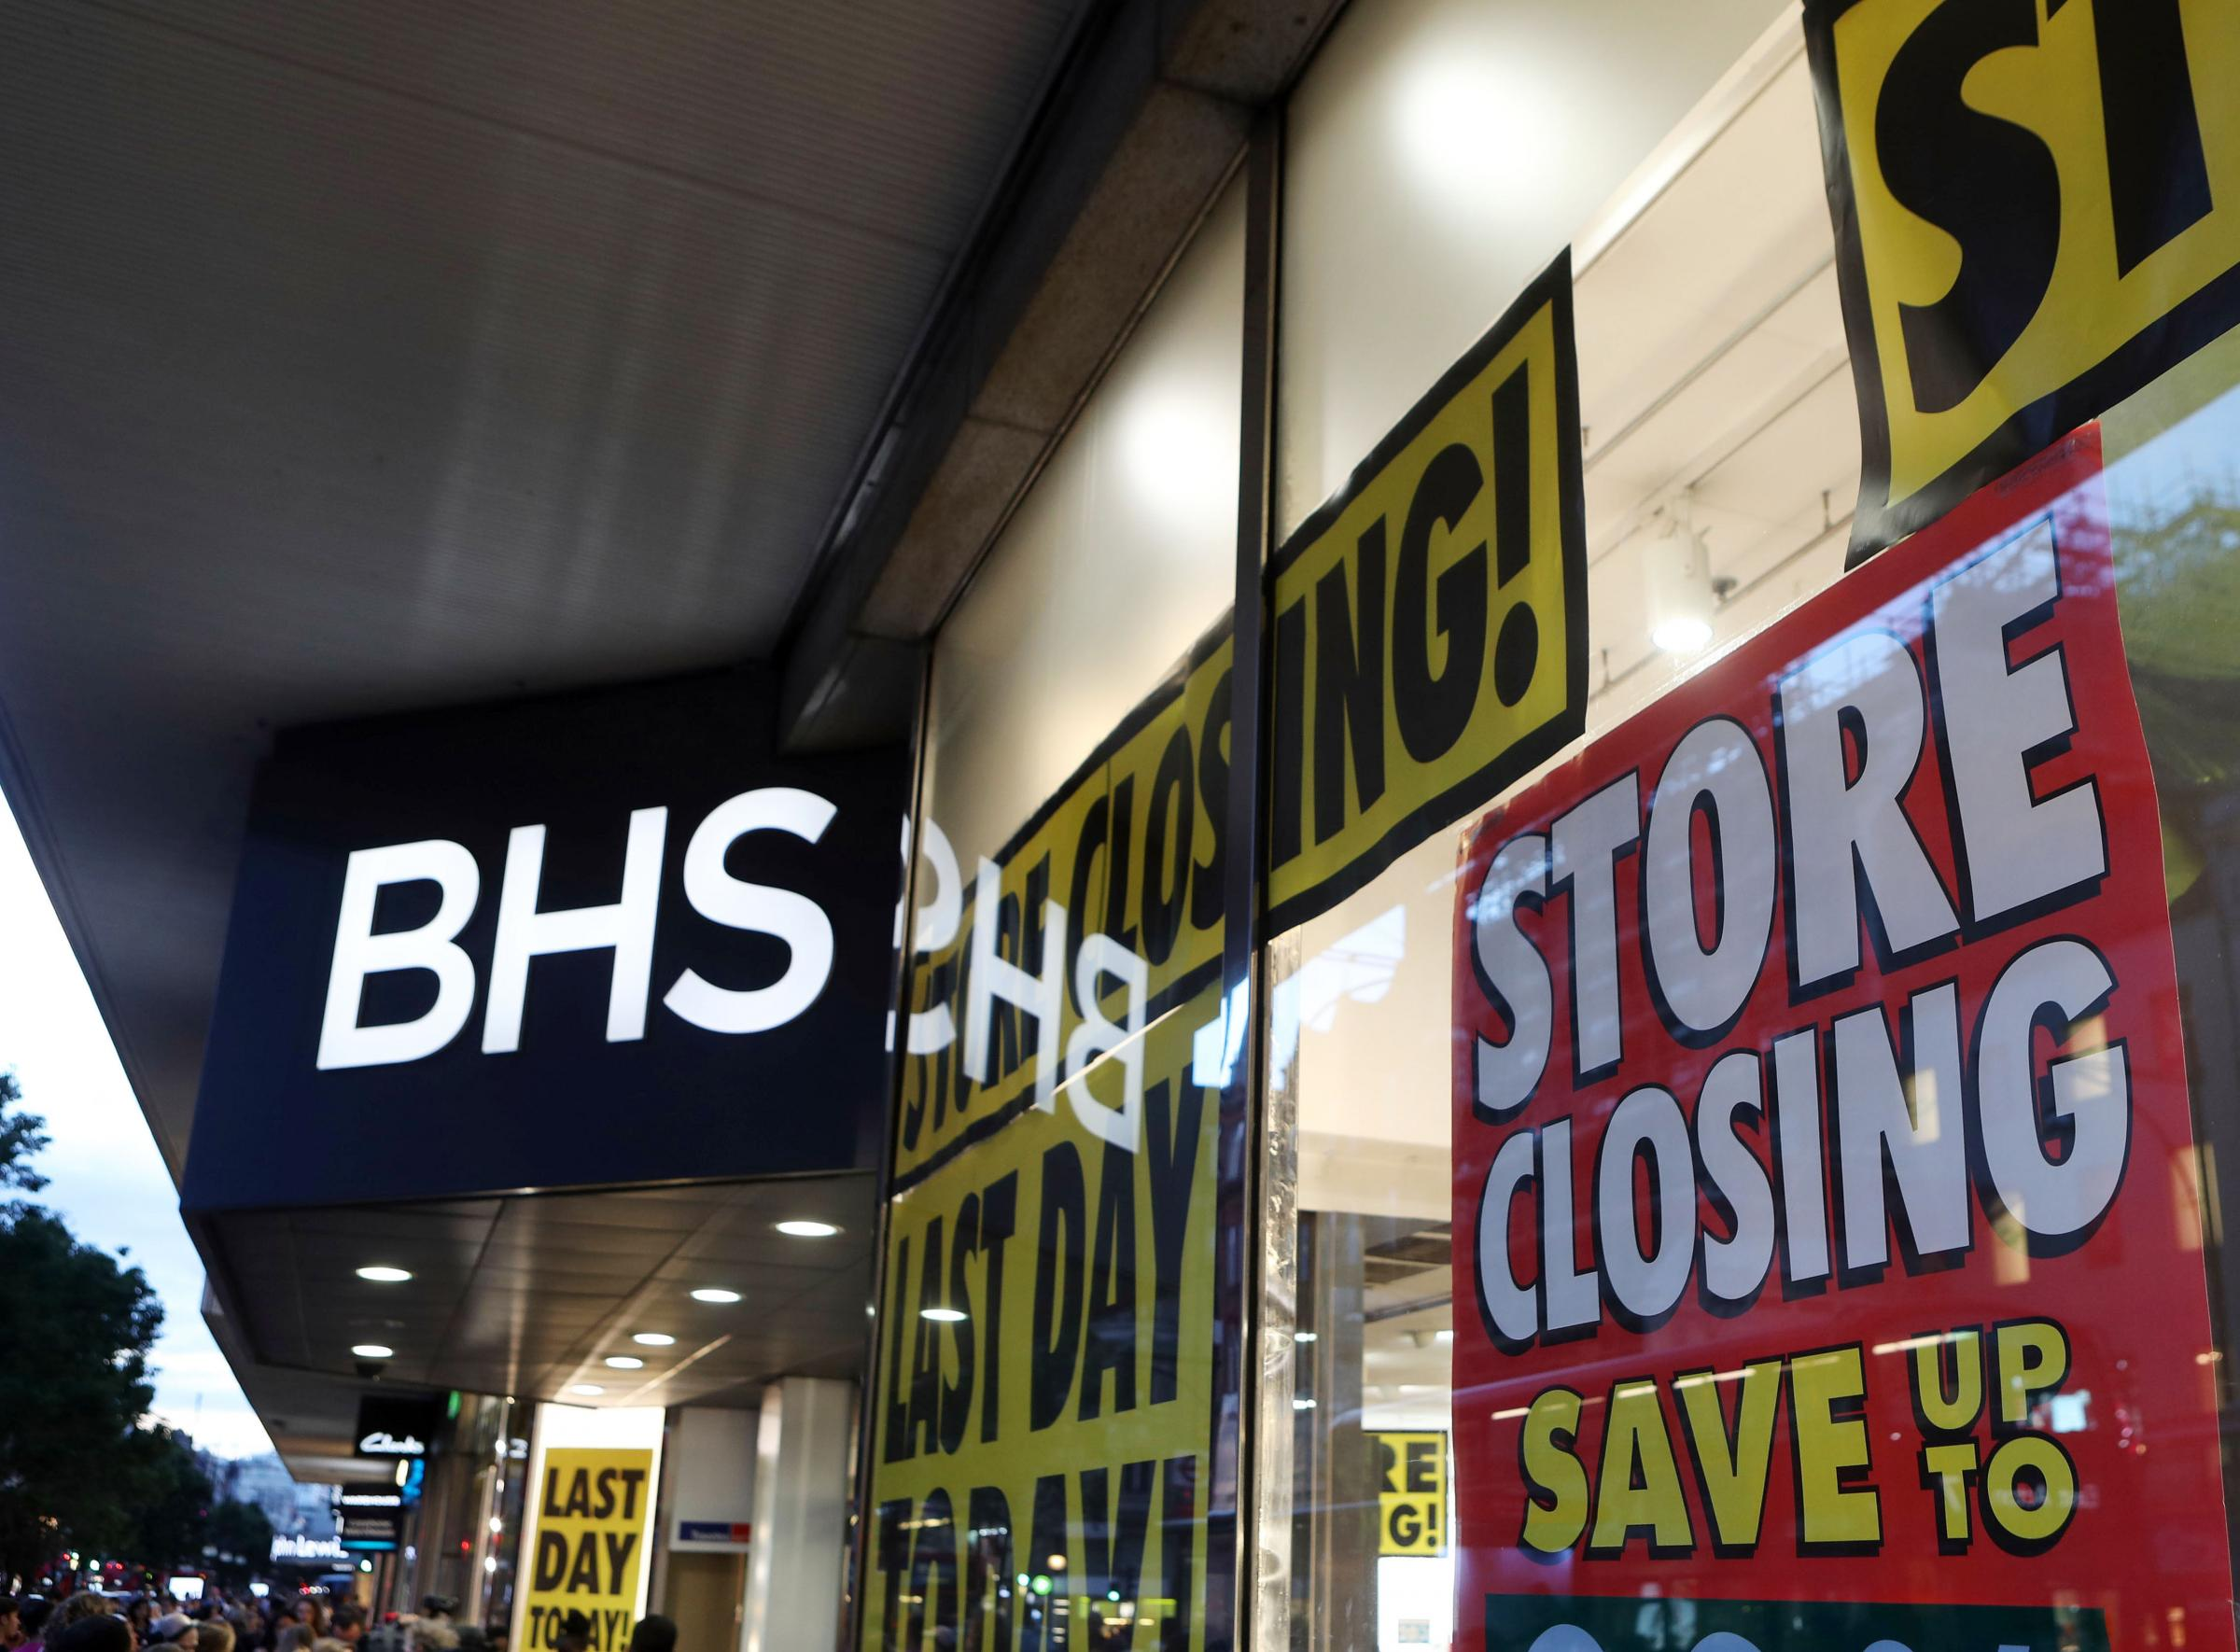 File photo dated 13/08/16 of a BHS store on Oxford Street, London, as the last 35 BHS stores are expected to close this week, with the doomed retailer set to disappear from the high street entirely by the weekend. PRESS ASSOCIATION Photo. Issue date: Mond